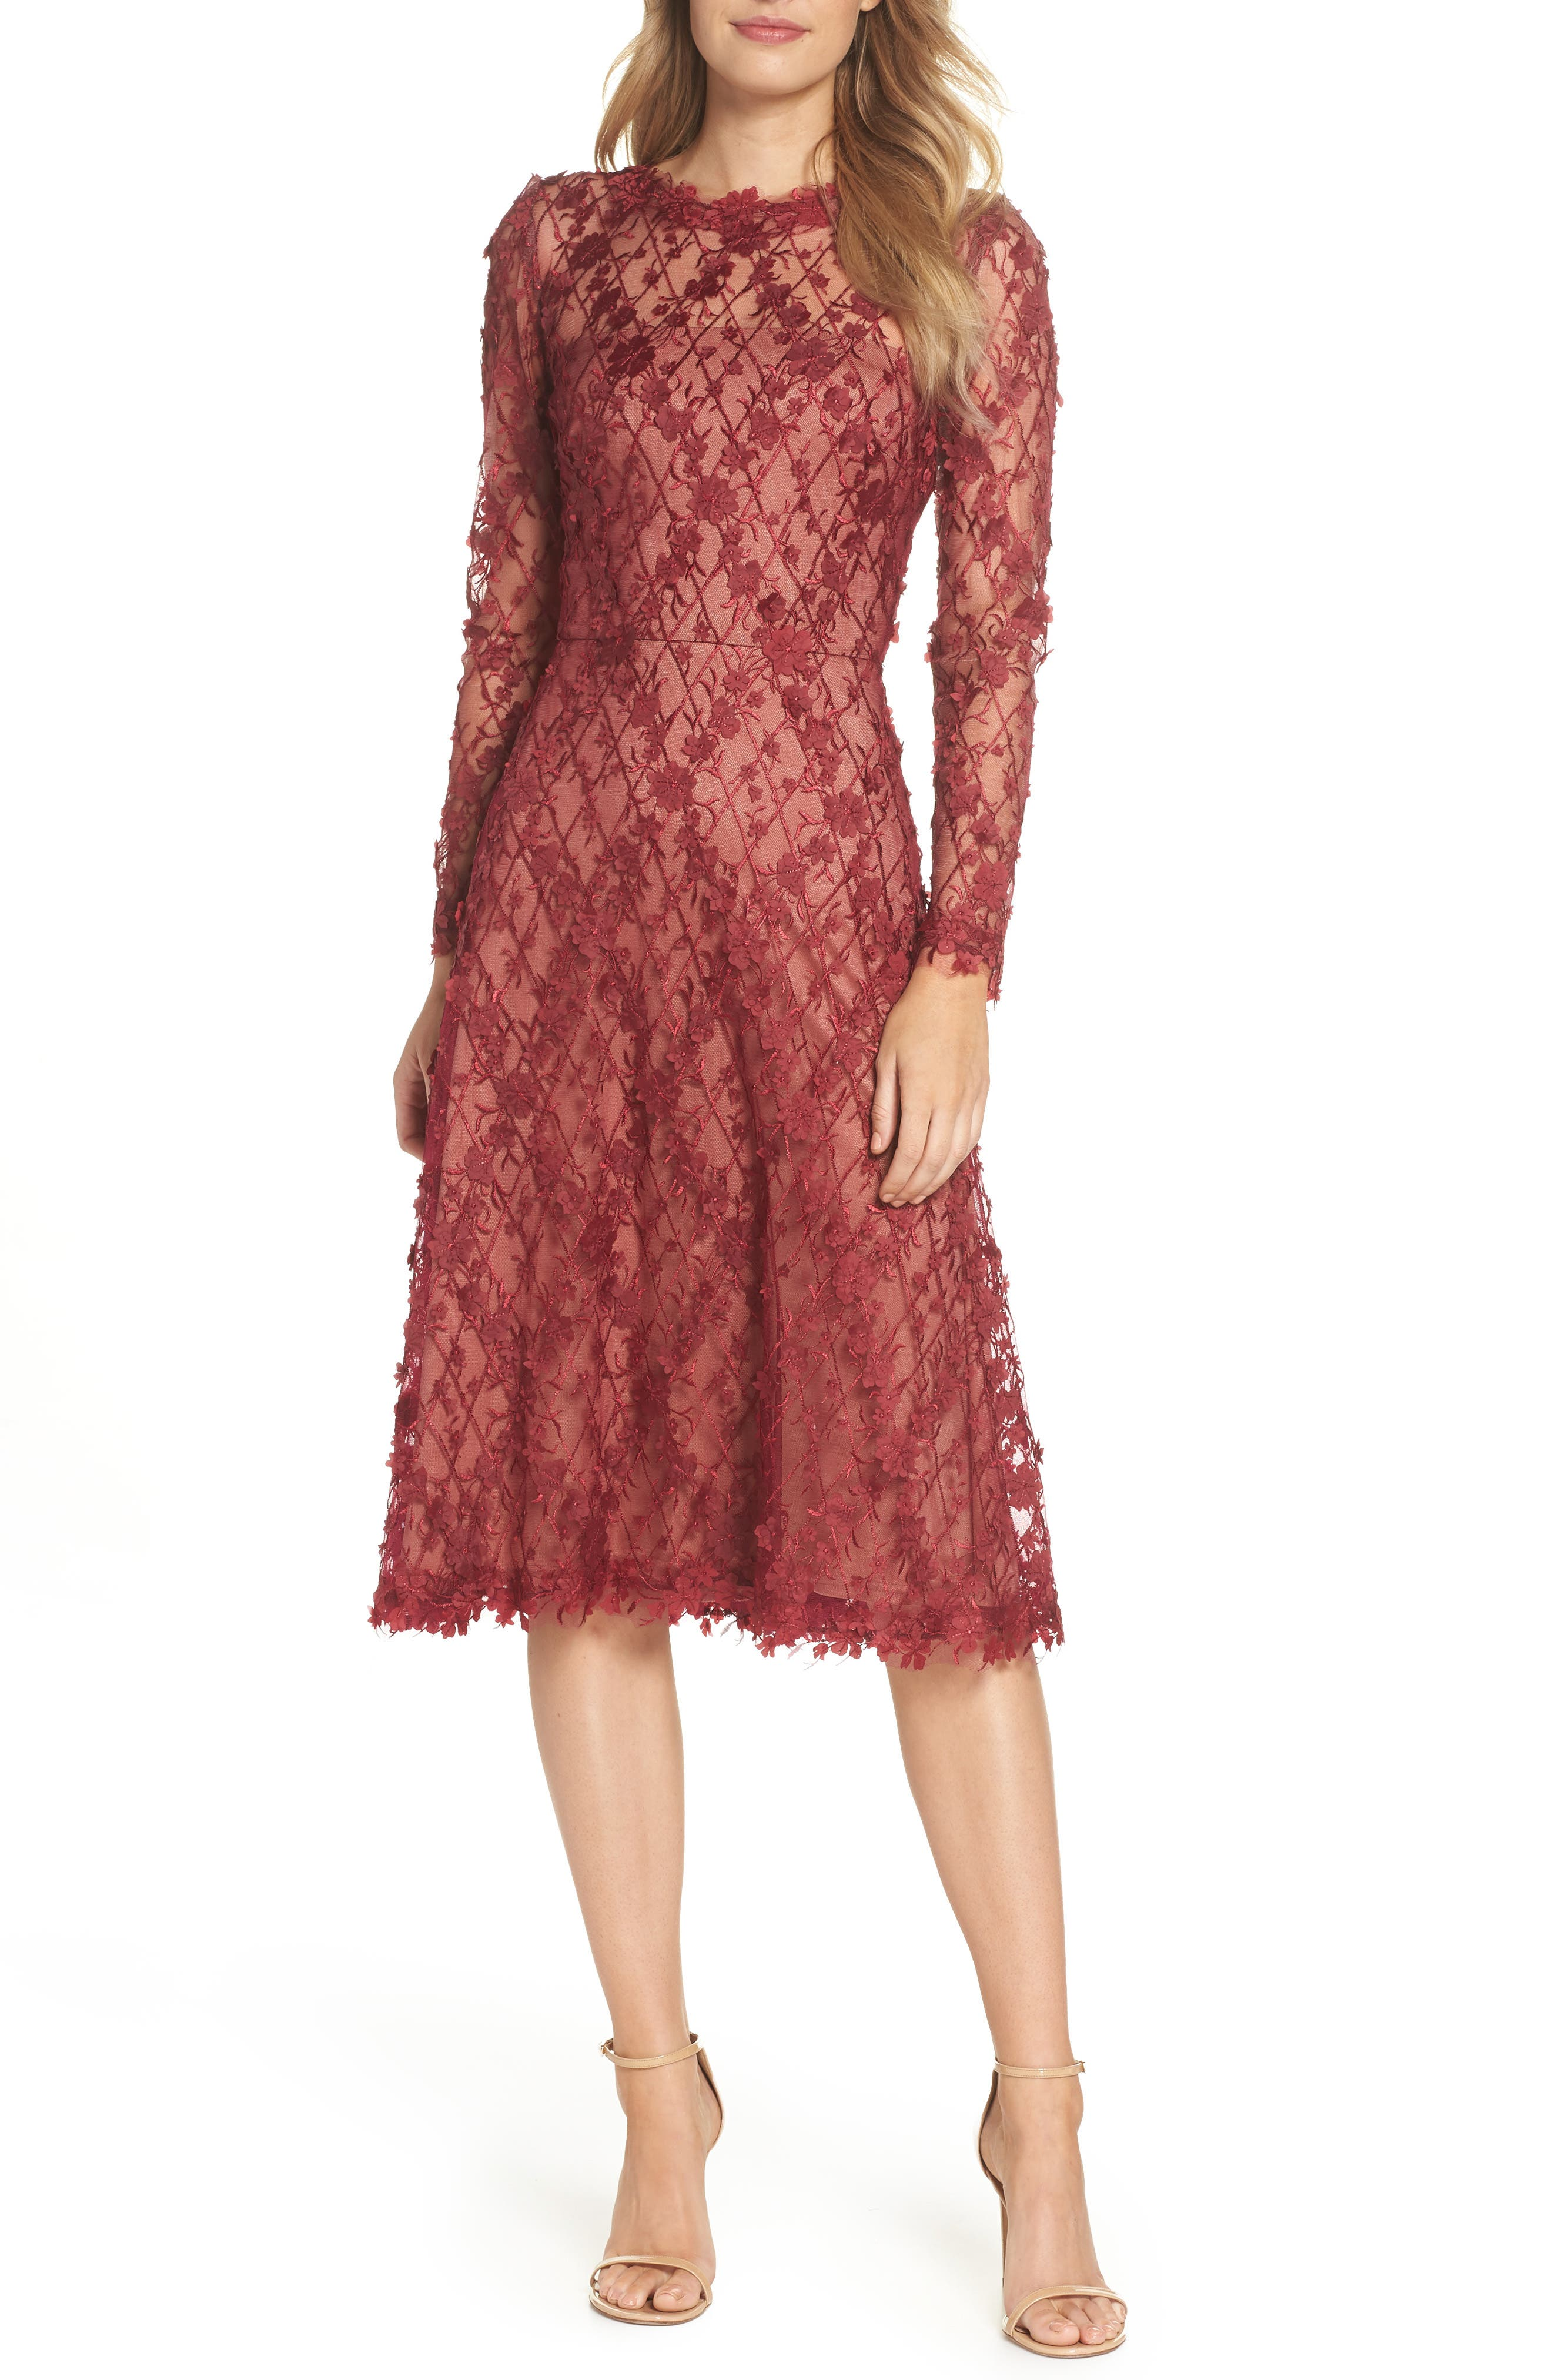 3D Flowers Lace Dress,                             Main thumbnail 1, color,                             ROSEWOOD/ NUDE